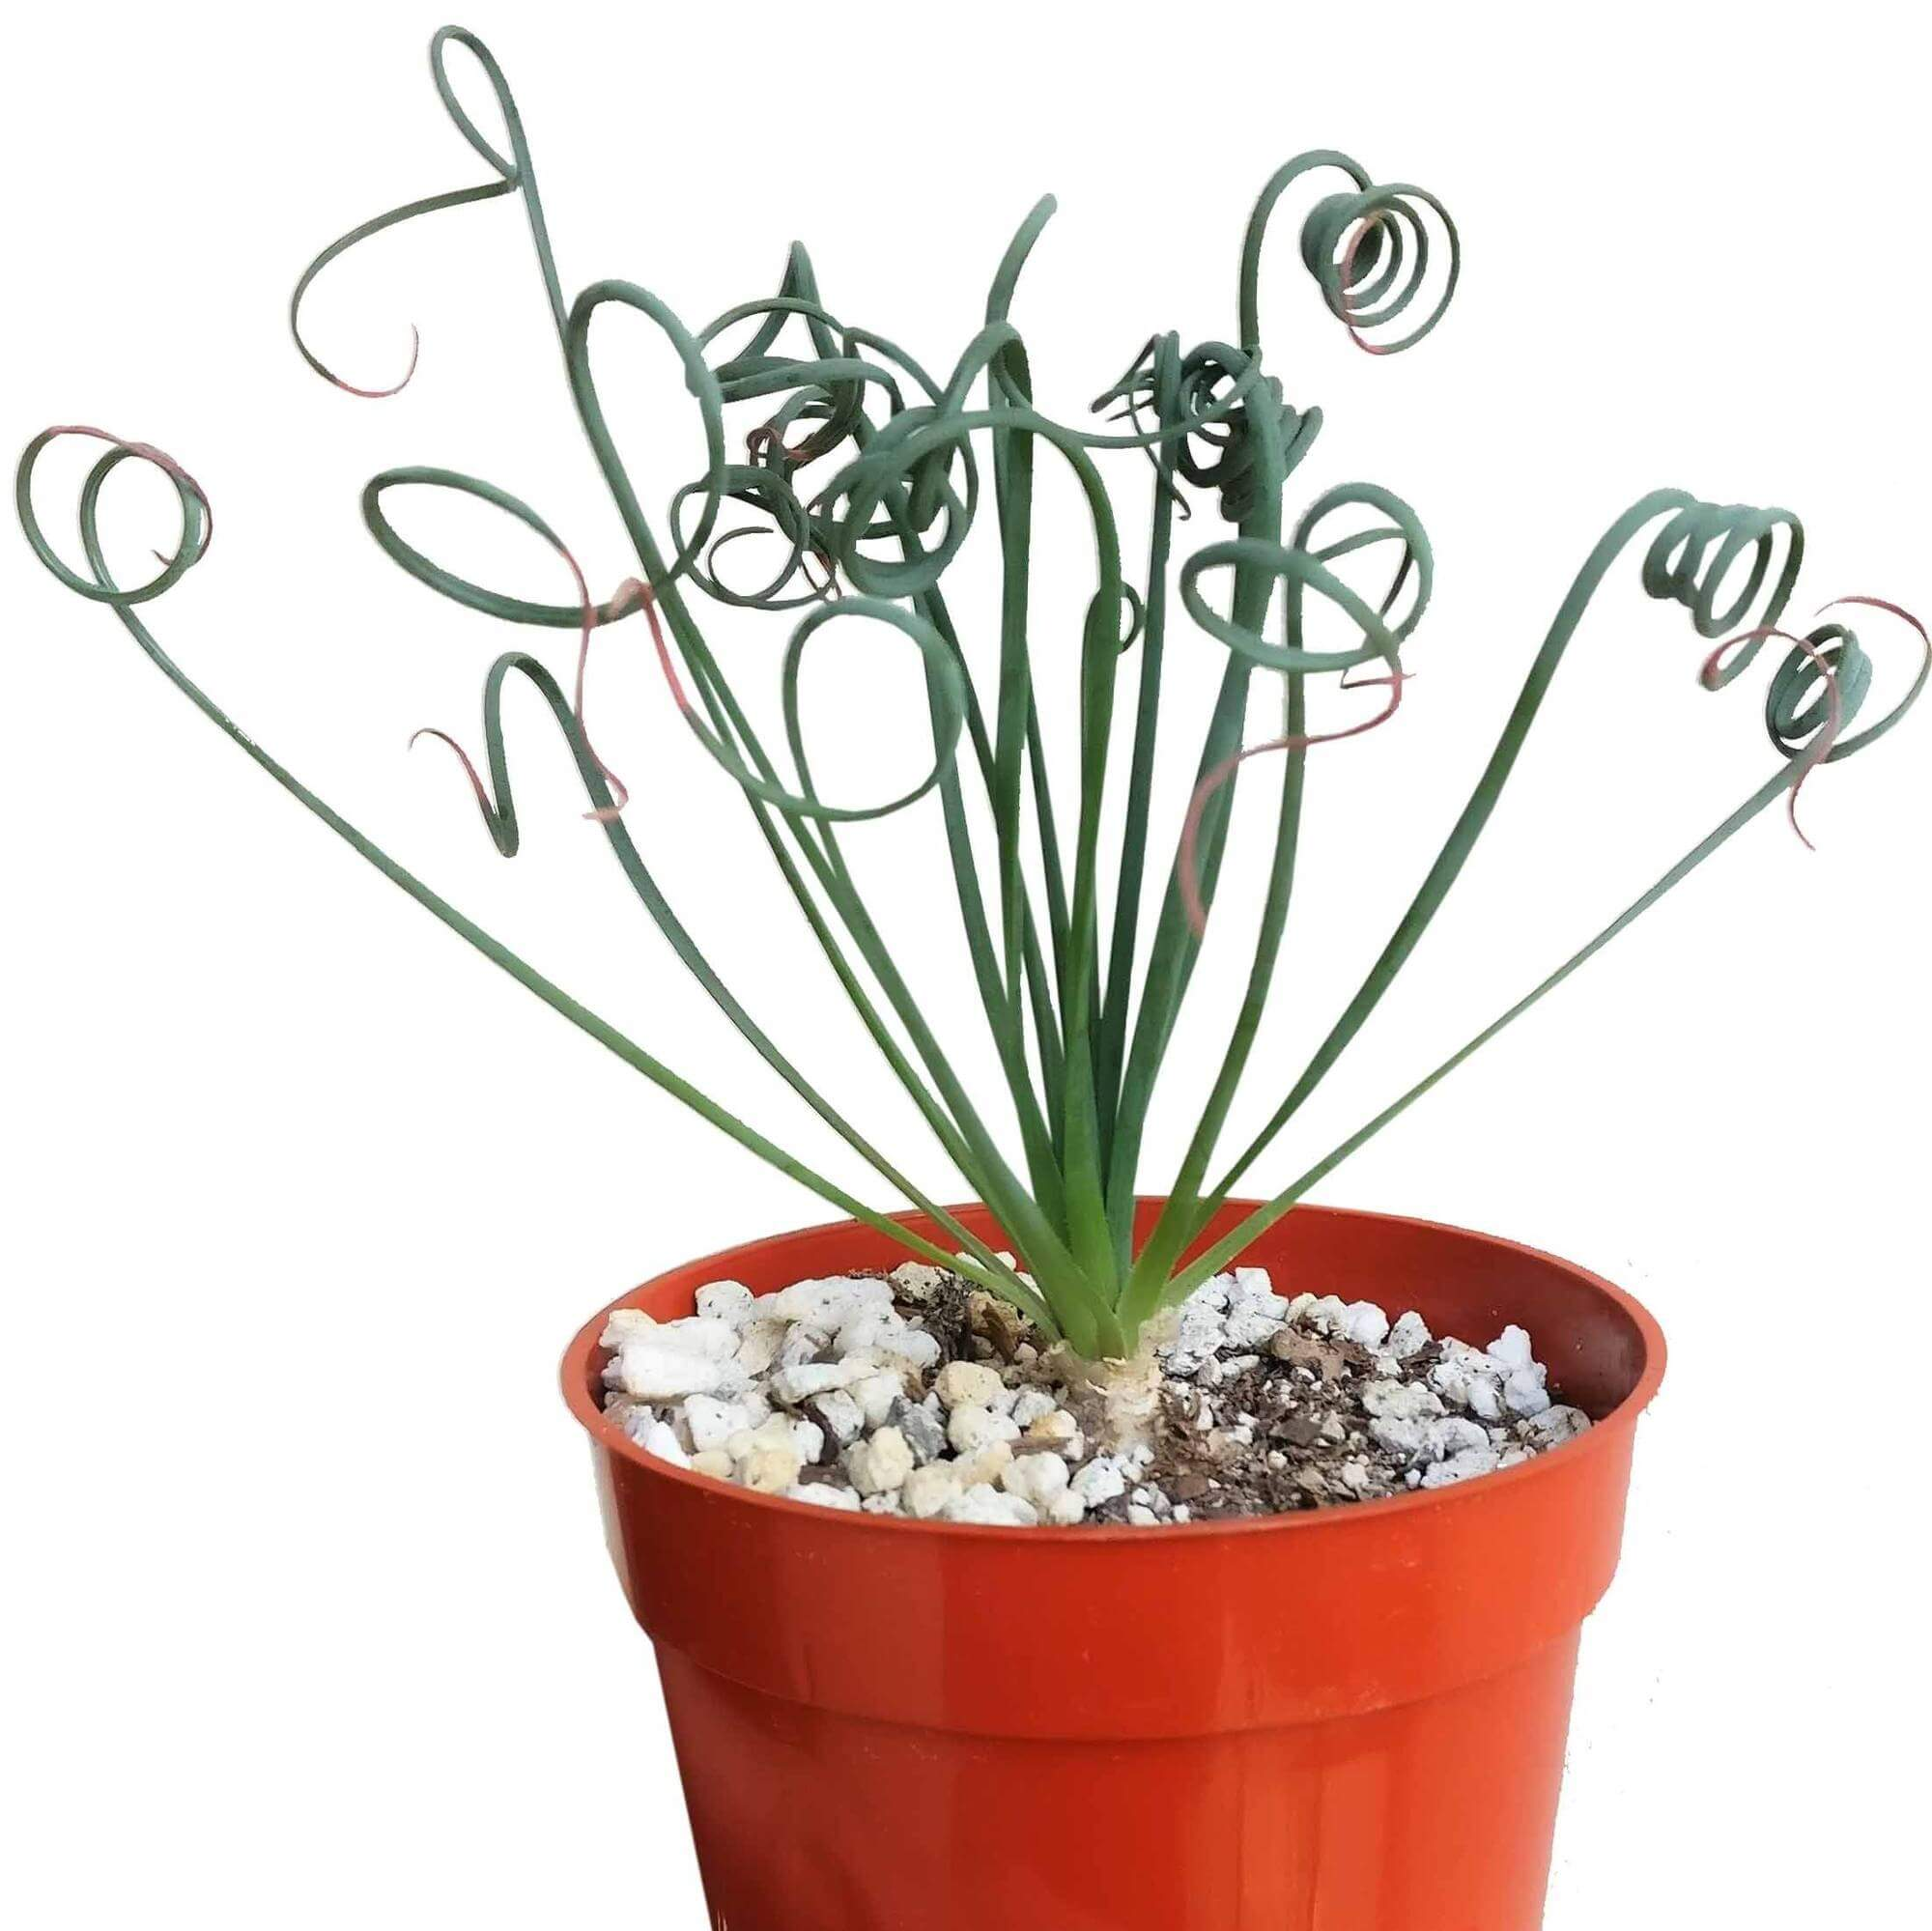 frizzle sizzle, albuca spiralis, corkscrew albuca, spiral albuca, helicopter plant, curly albuca, slime lily, curly green succulent, rare plant, curly succulent, garden plants, cool garden ideas, succulent box